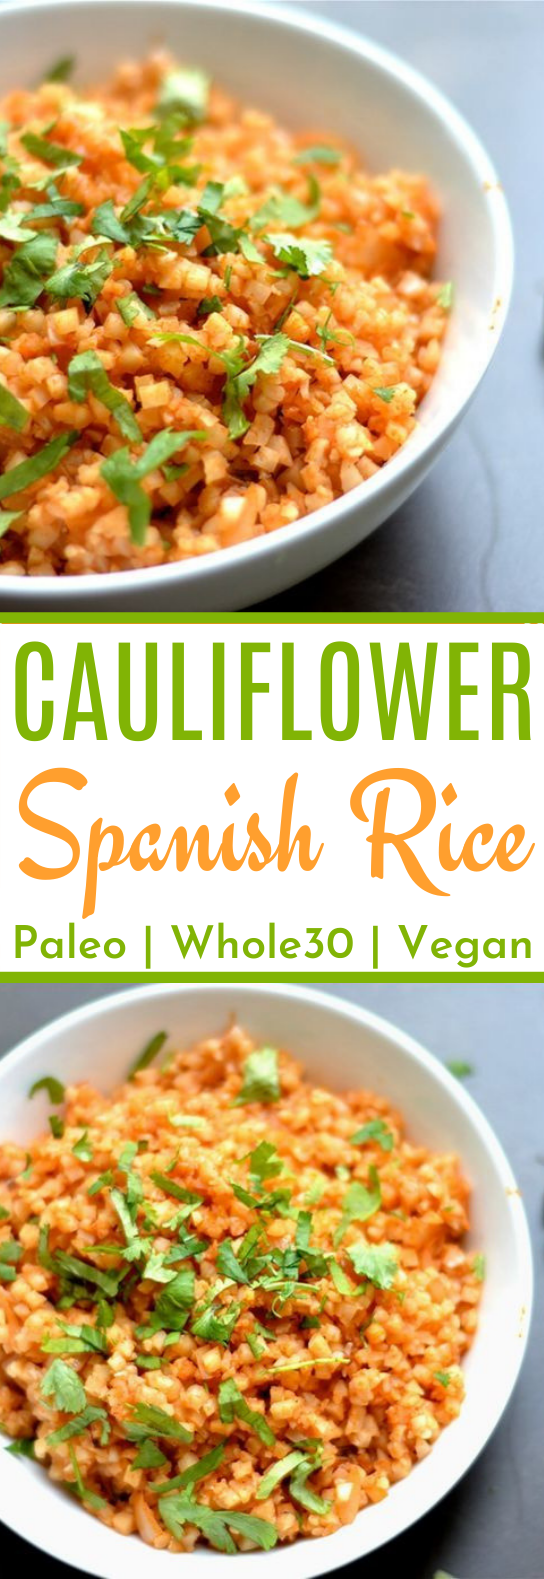 Cauliflower Spanish Rice #healthy #paleo #glutenfree #lowcarb #dinner